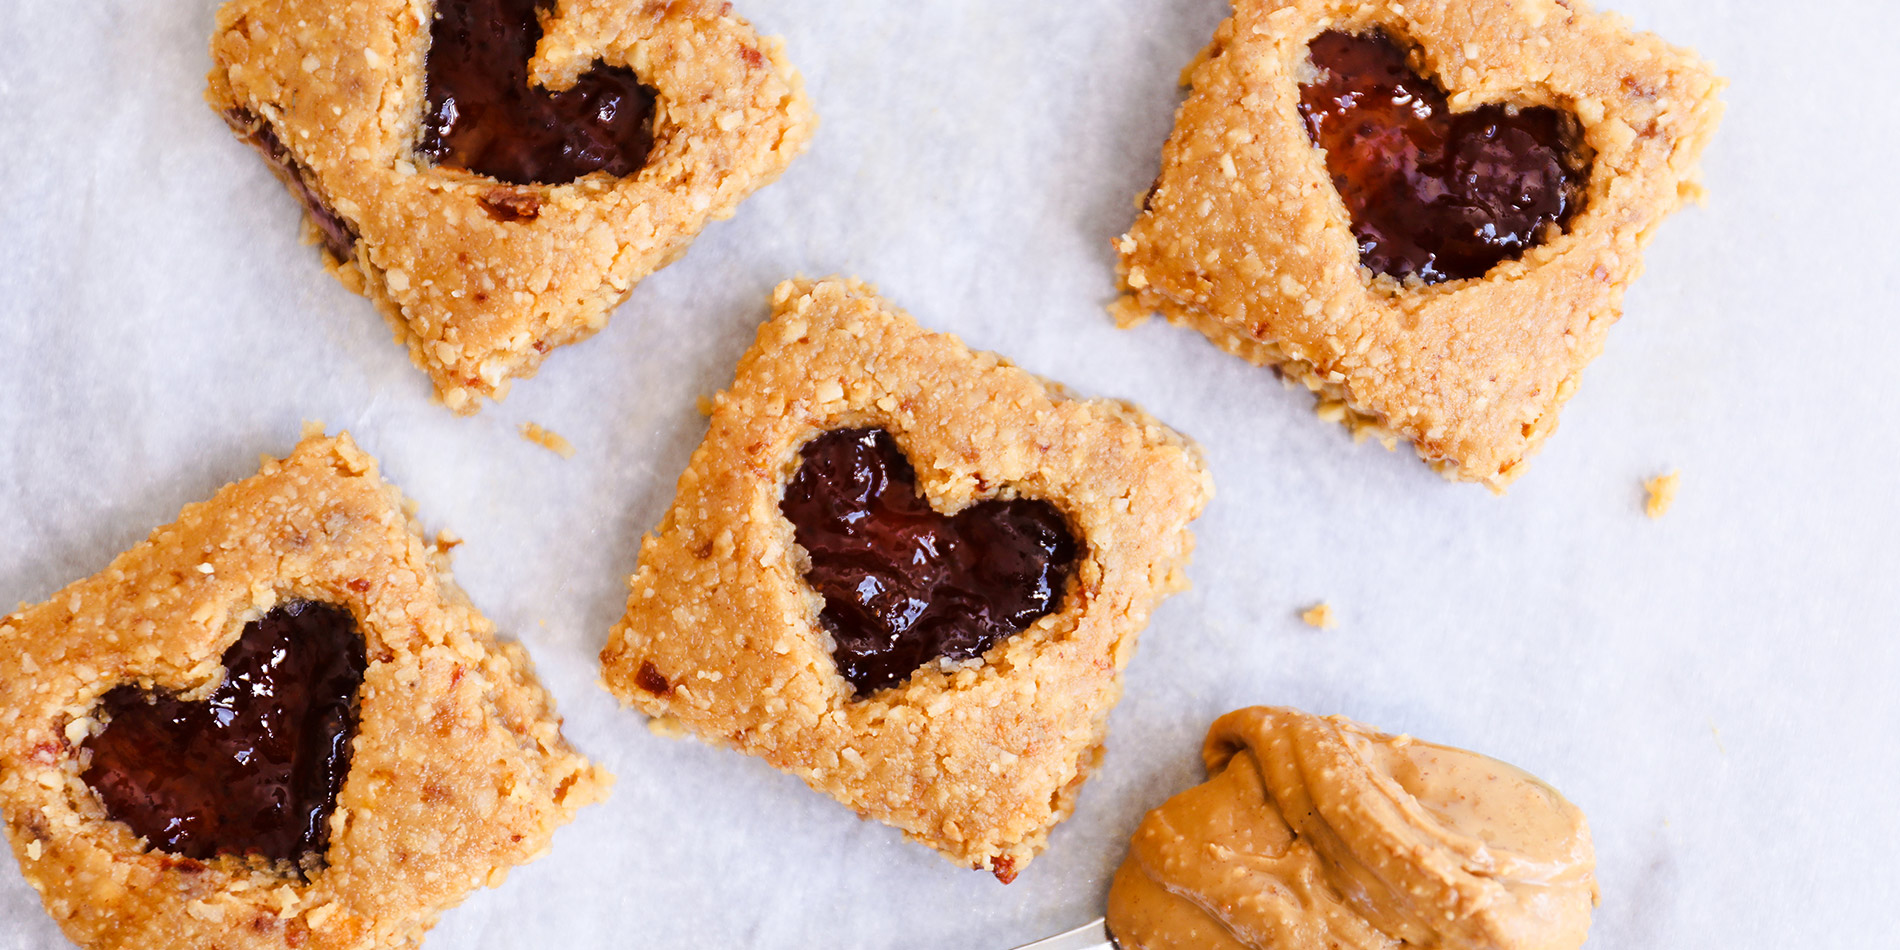 No Bake PB & J Bars with heart-shaped jelly center with a spoonful of peanut butter on white background with crumbs